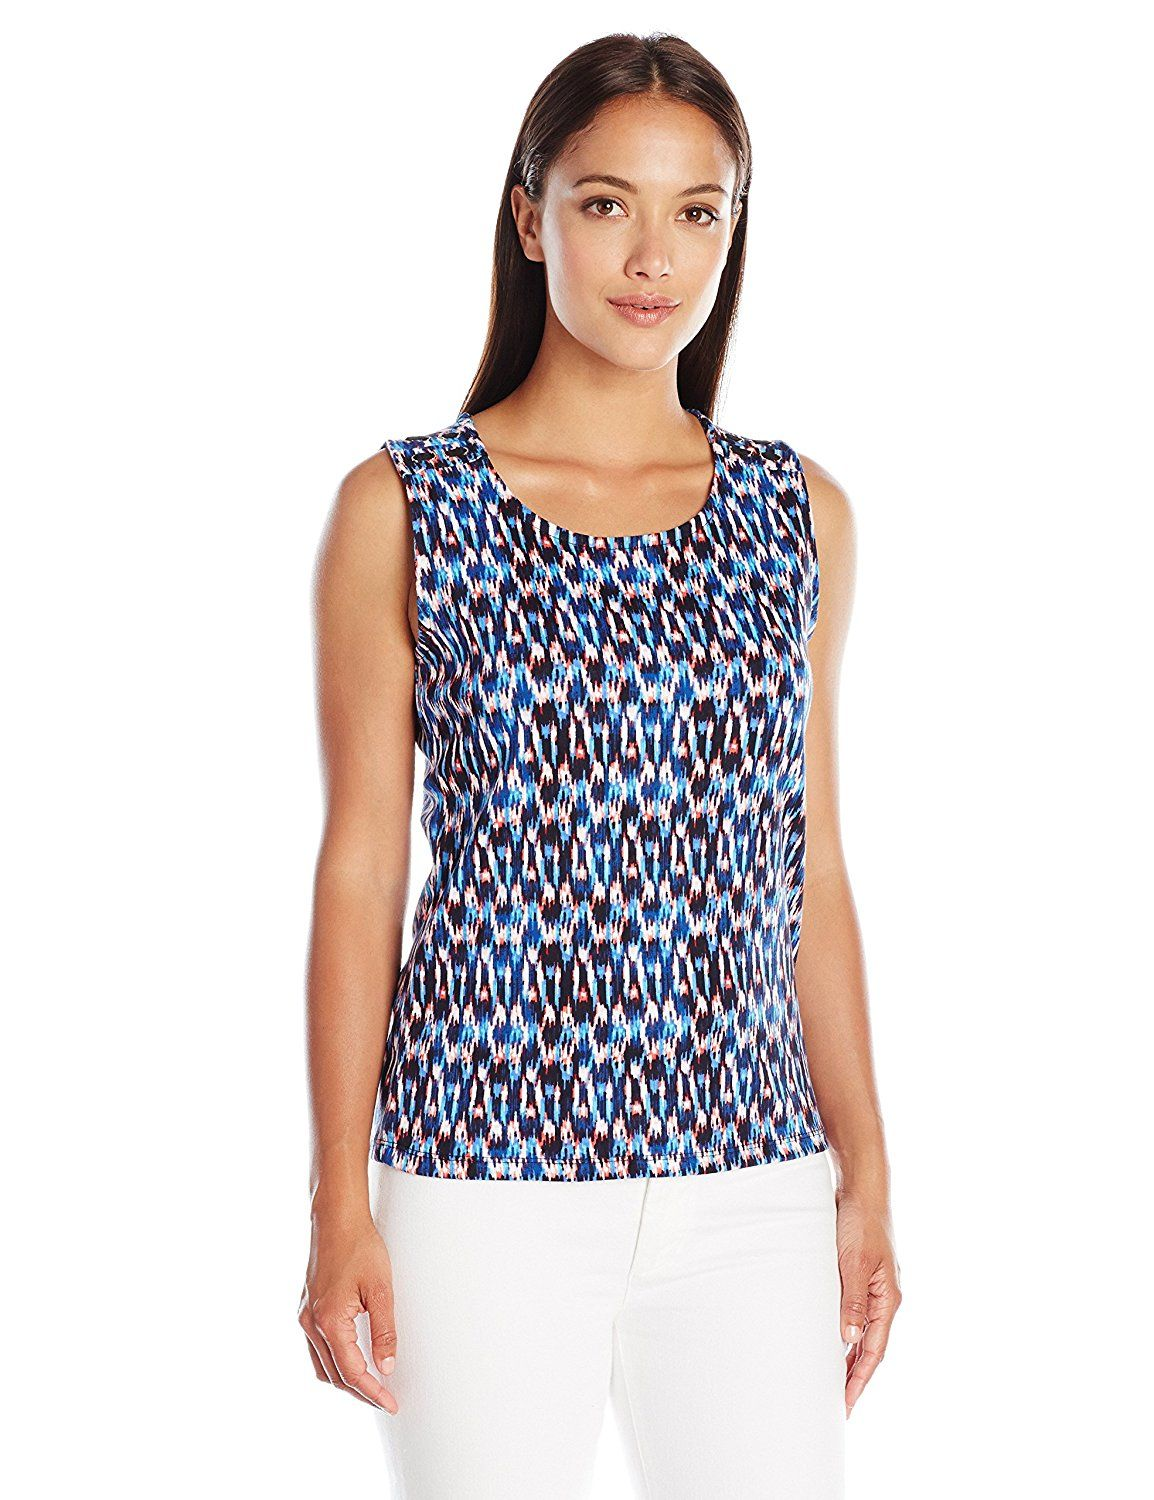 73e5333777d04 Rafaella Women s Petite Americana Ikat Print Sleeveless Top with Grommets     Startling review available here